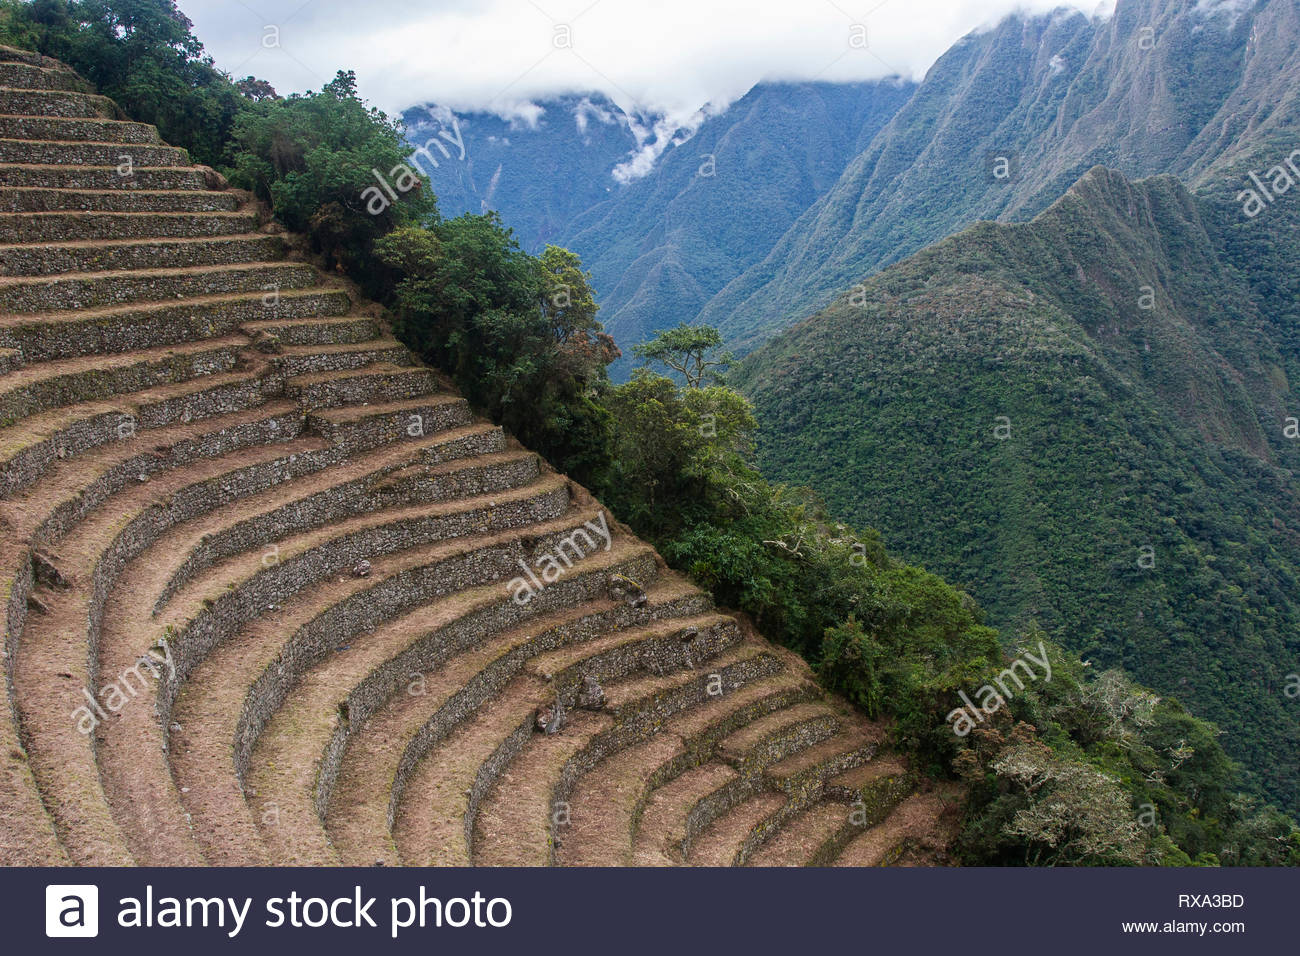 Old ruined terraced field against Andes mountains - Stock Image